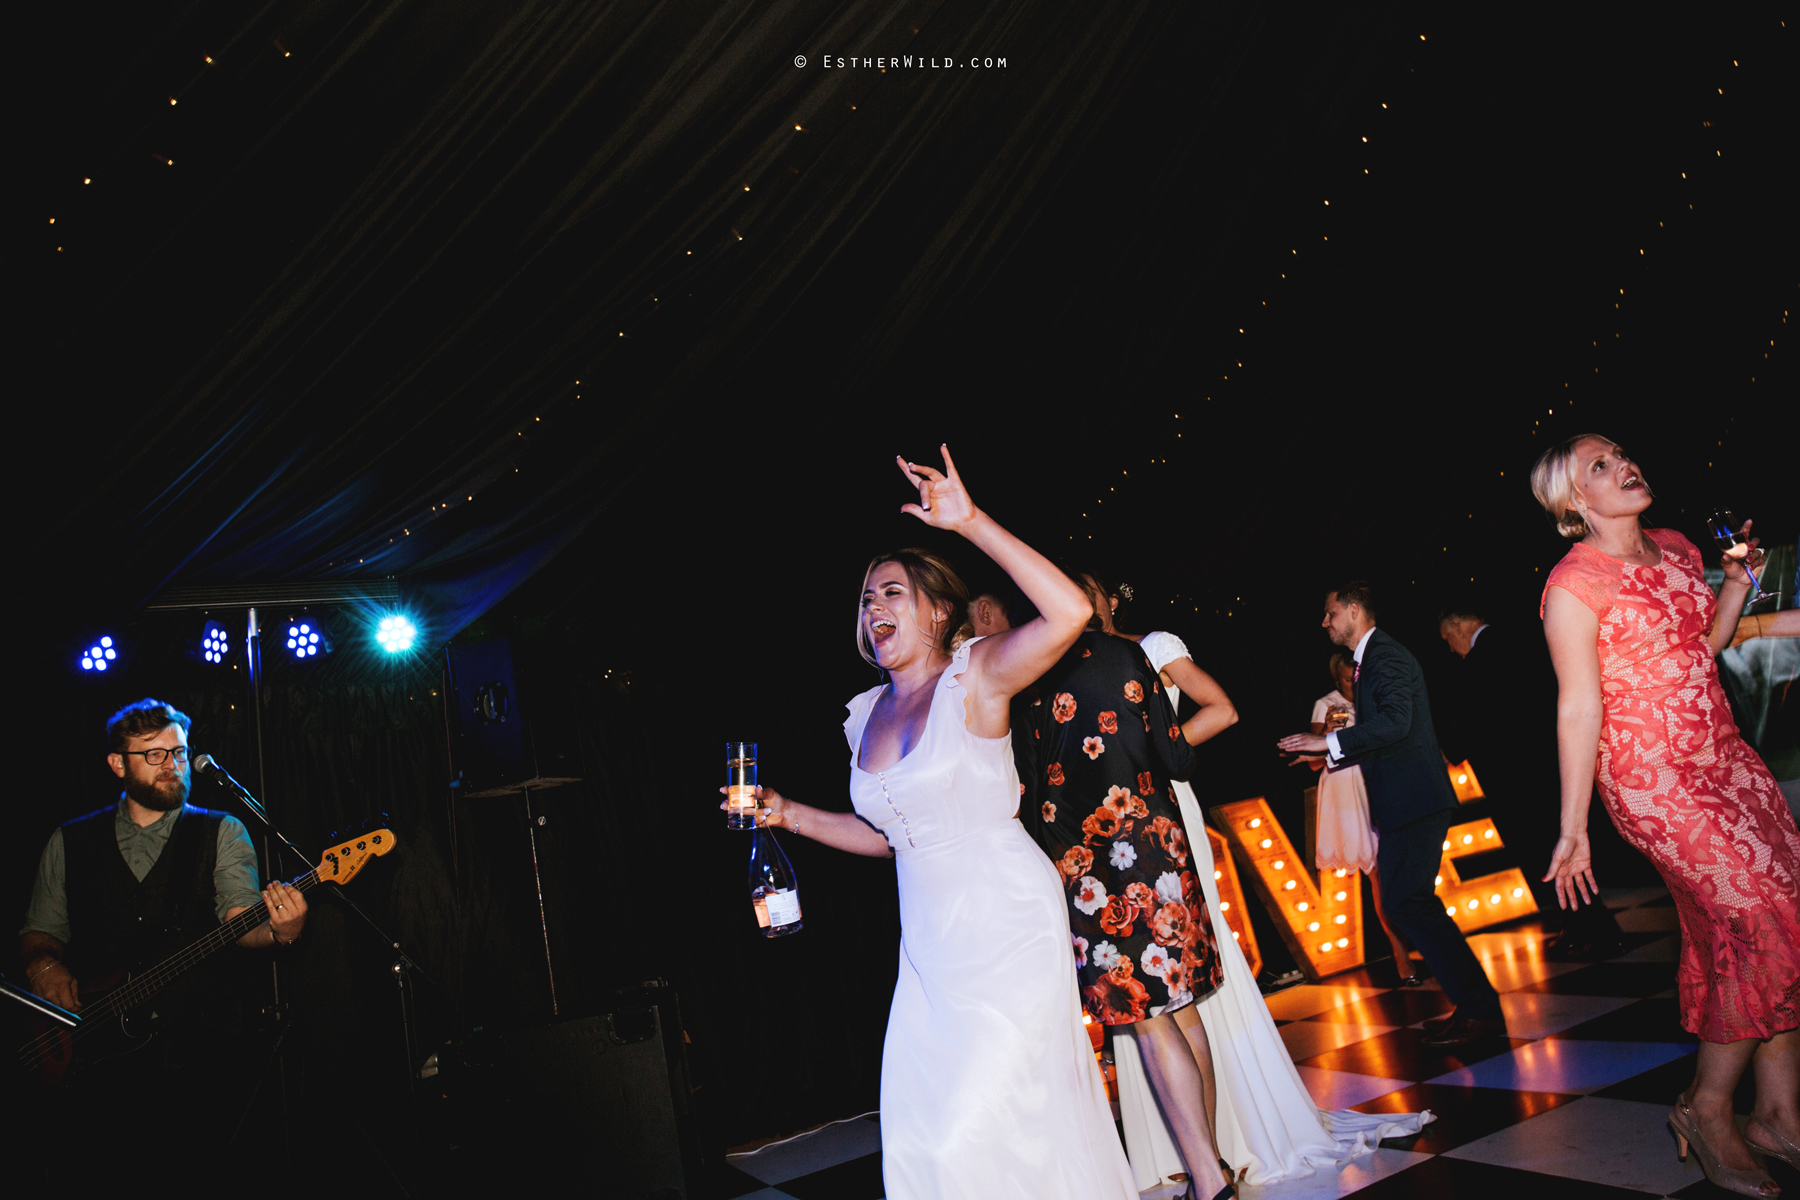 Wootton_Wedding_Copyright_Esther_Wild_Photographer_IMG_3593.jpg